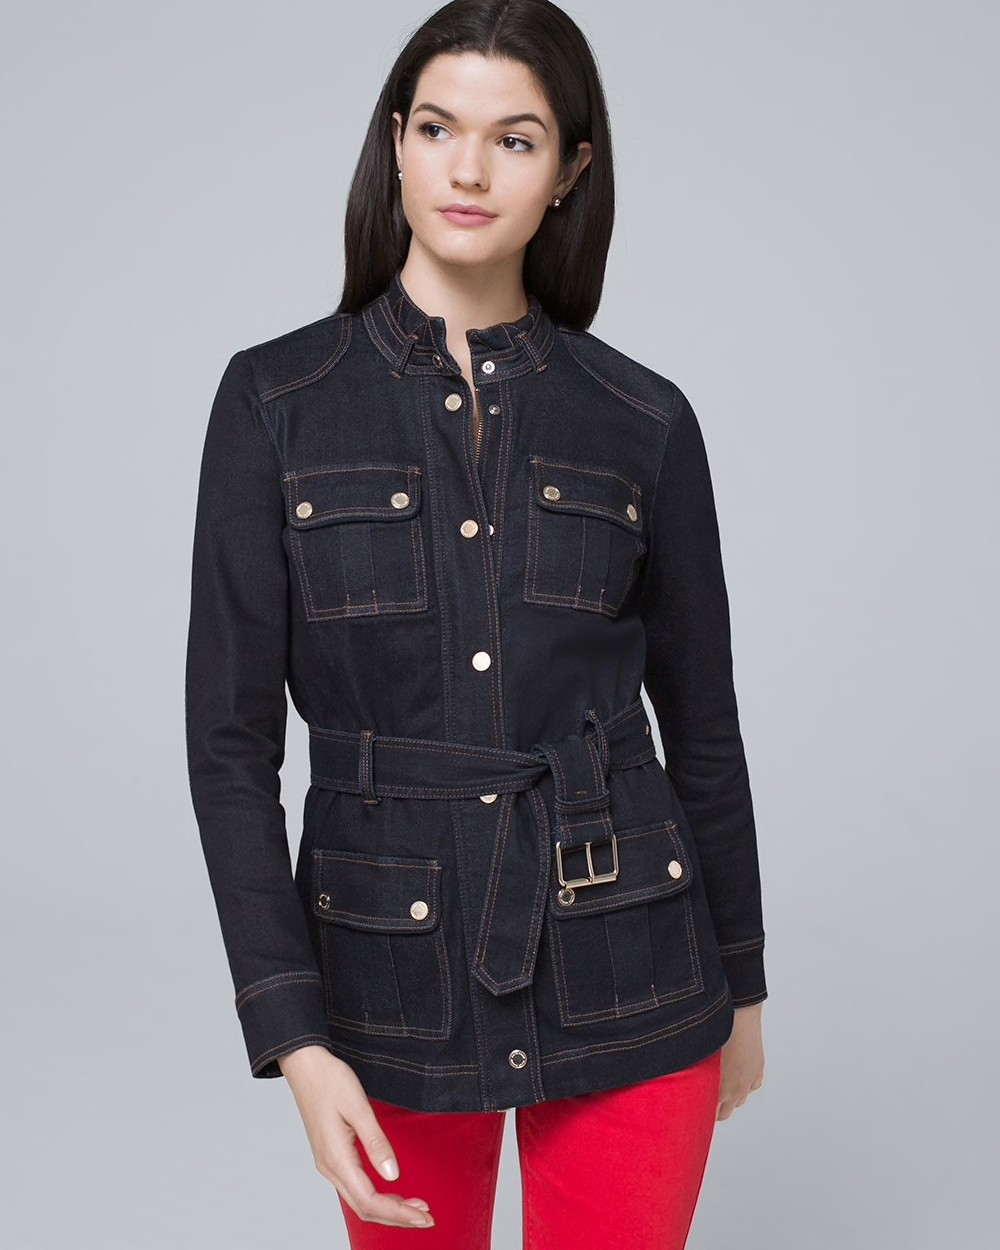 Capsule Wardrobe Jackets Denim Jacket